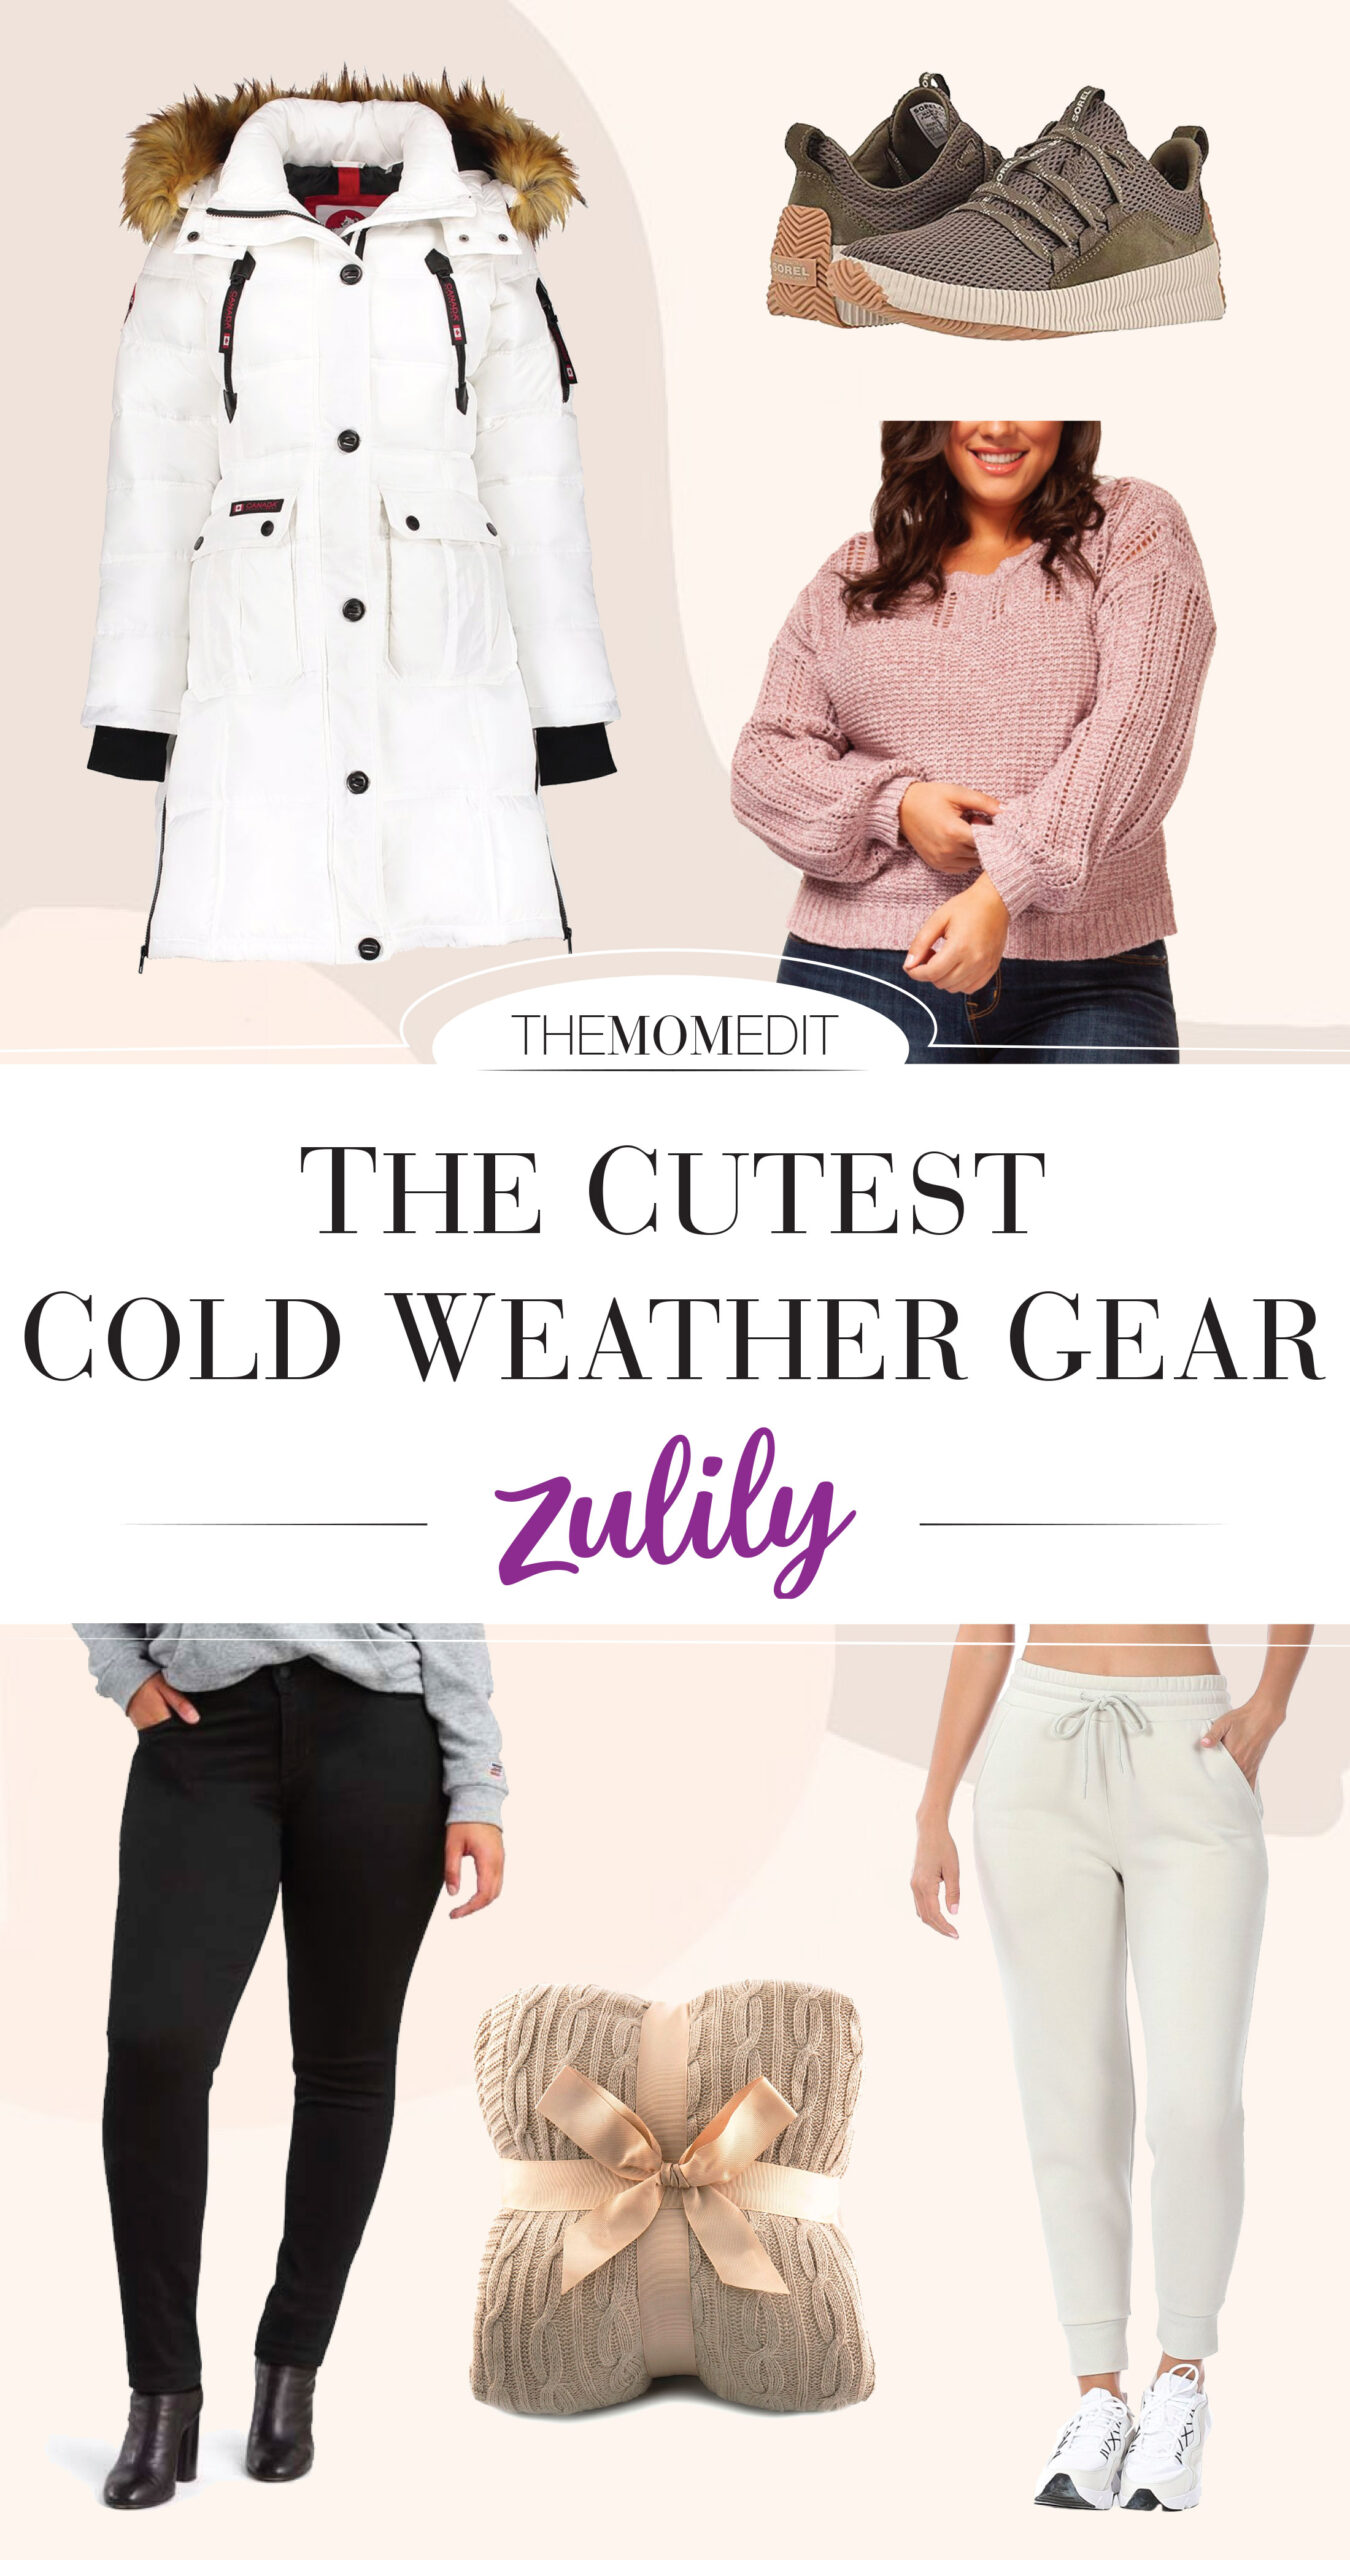 The universe knows we're ready for fall & Zulily is w/ us! We're shopping cute, cozy outfit (& face masks), plus some holiday hosting gear. Let's shop!